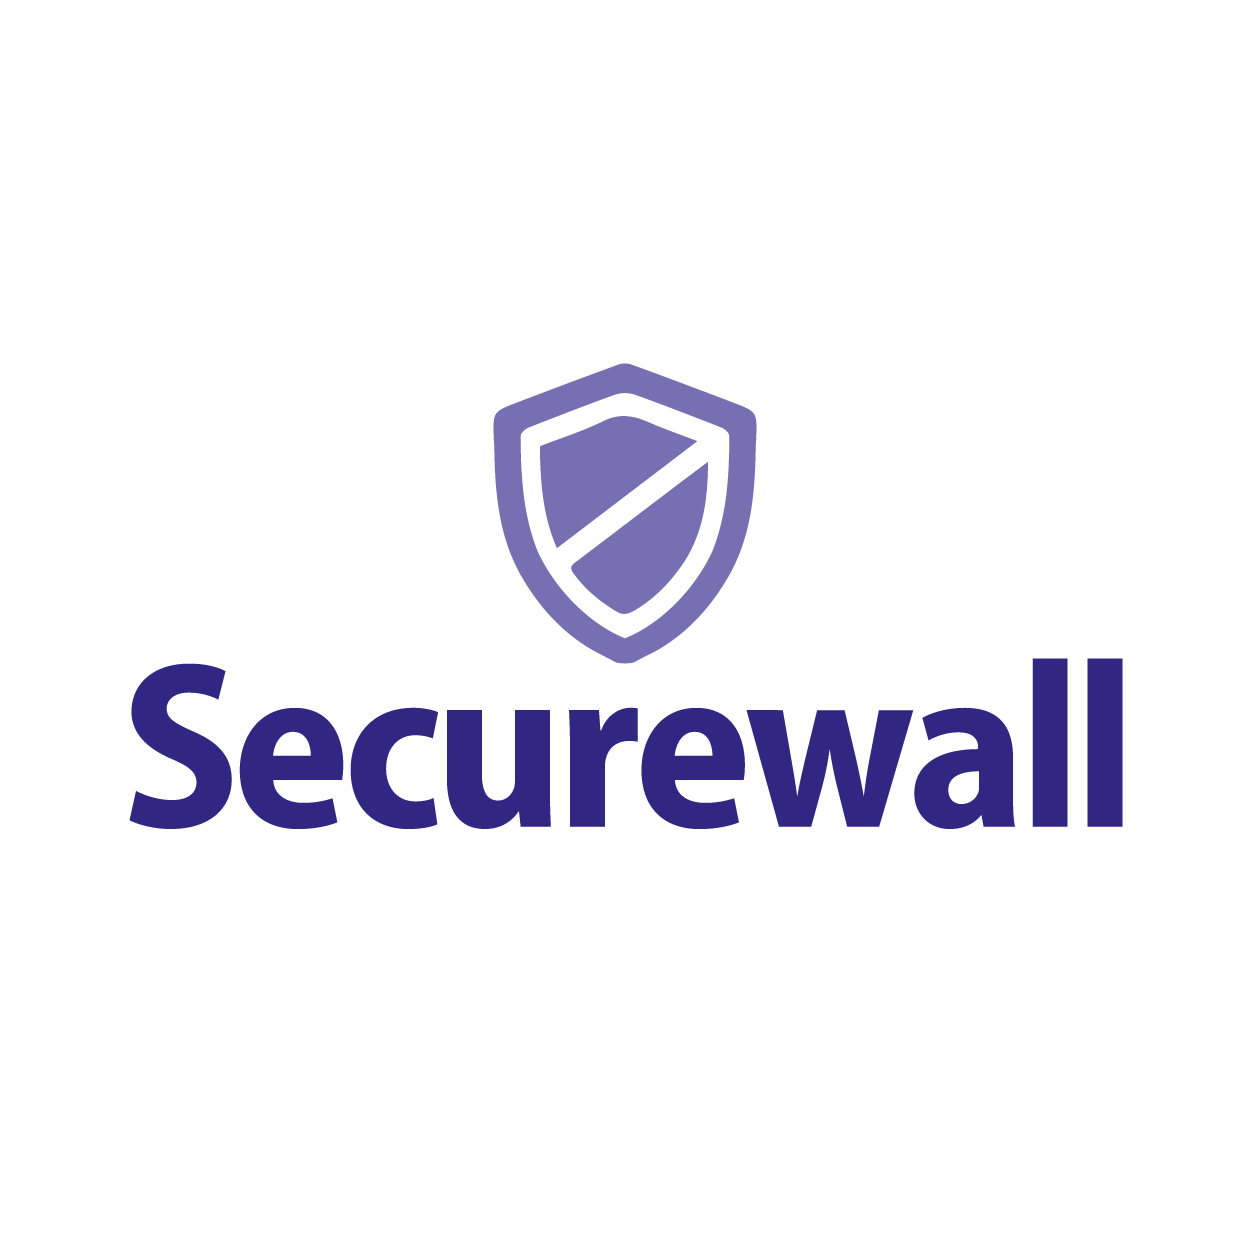 Cyber Security Securewall